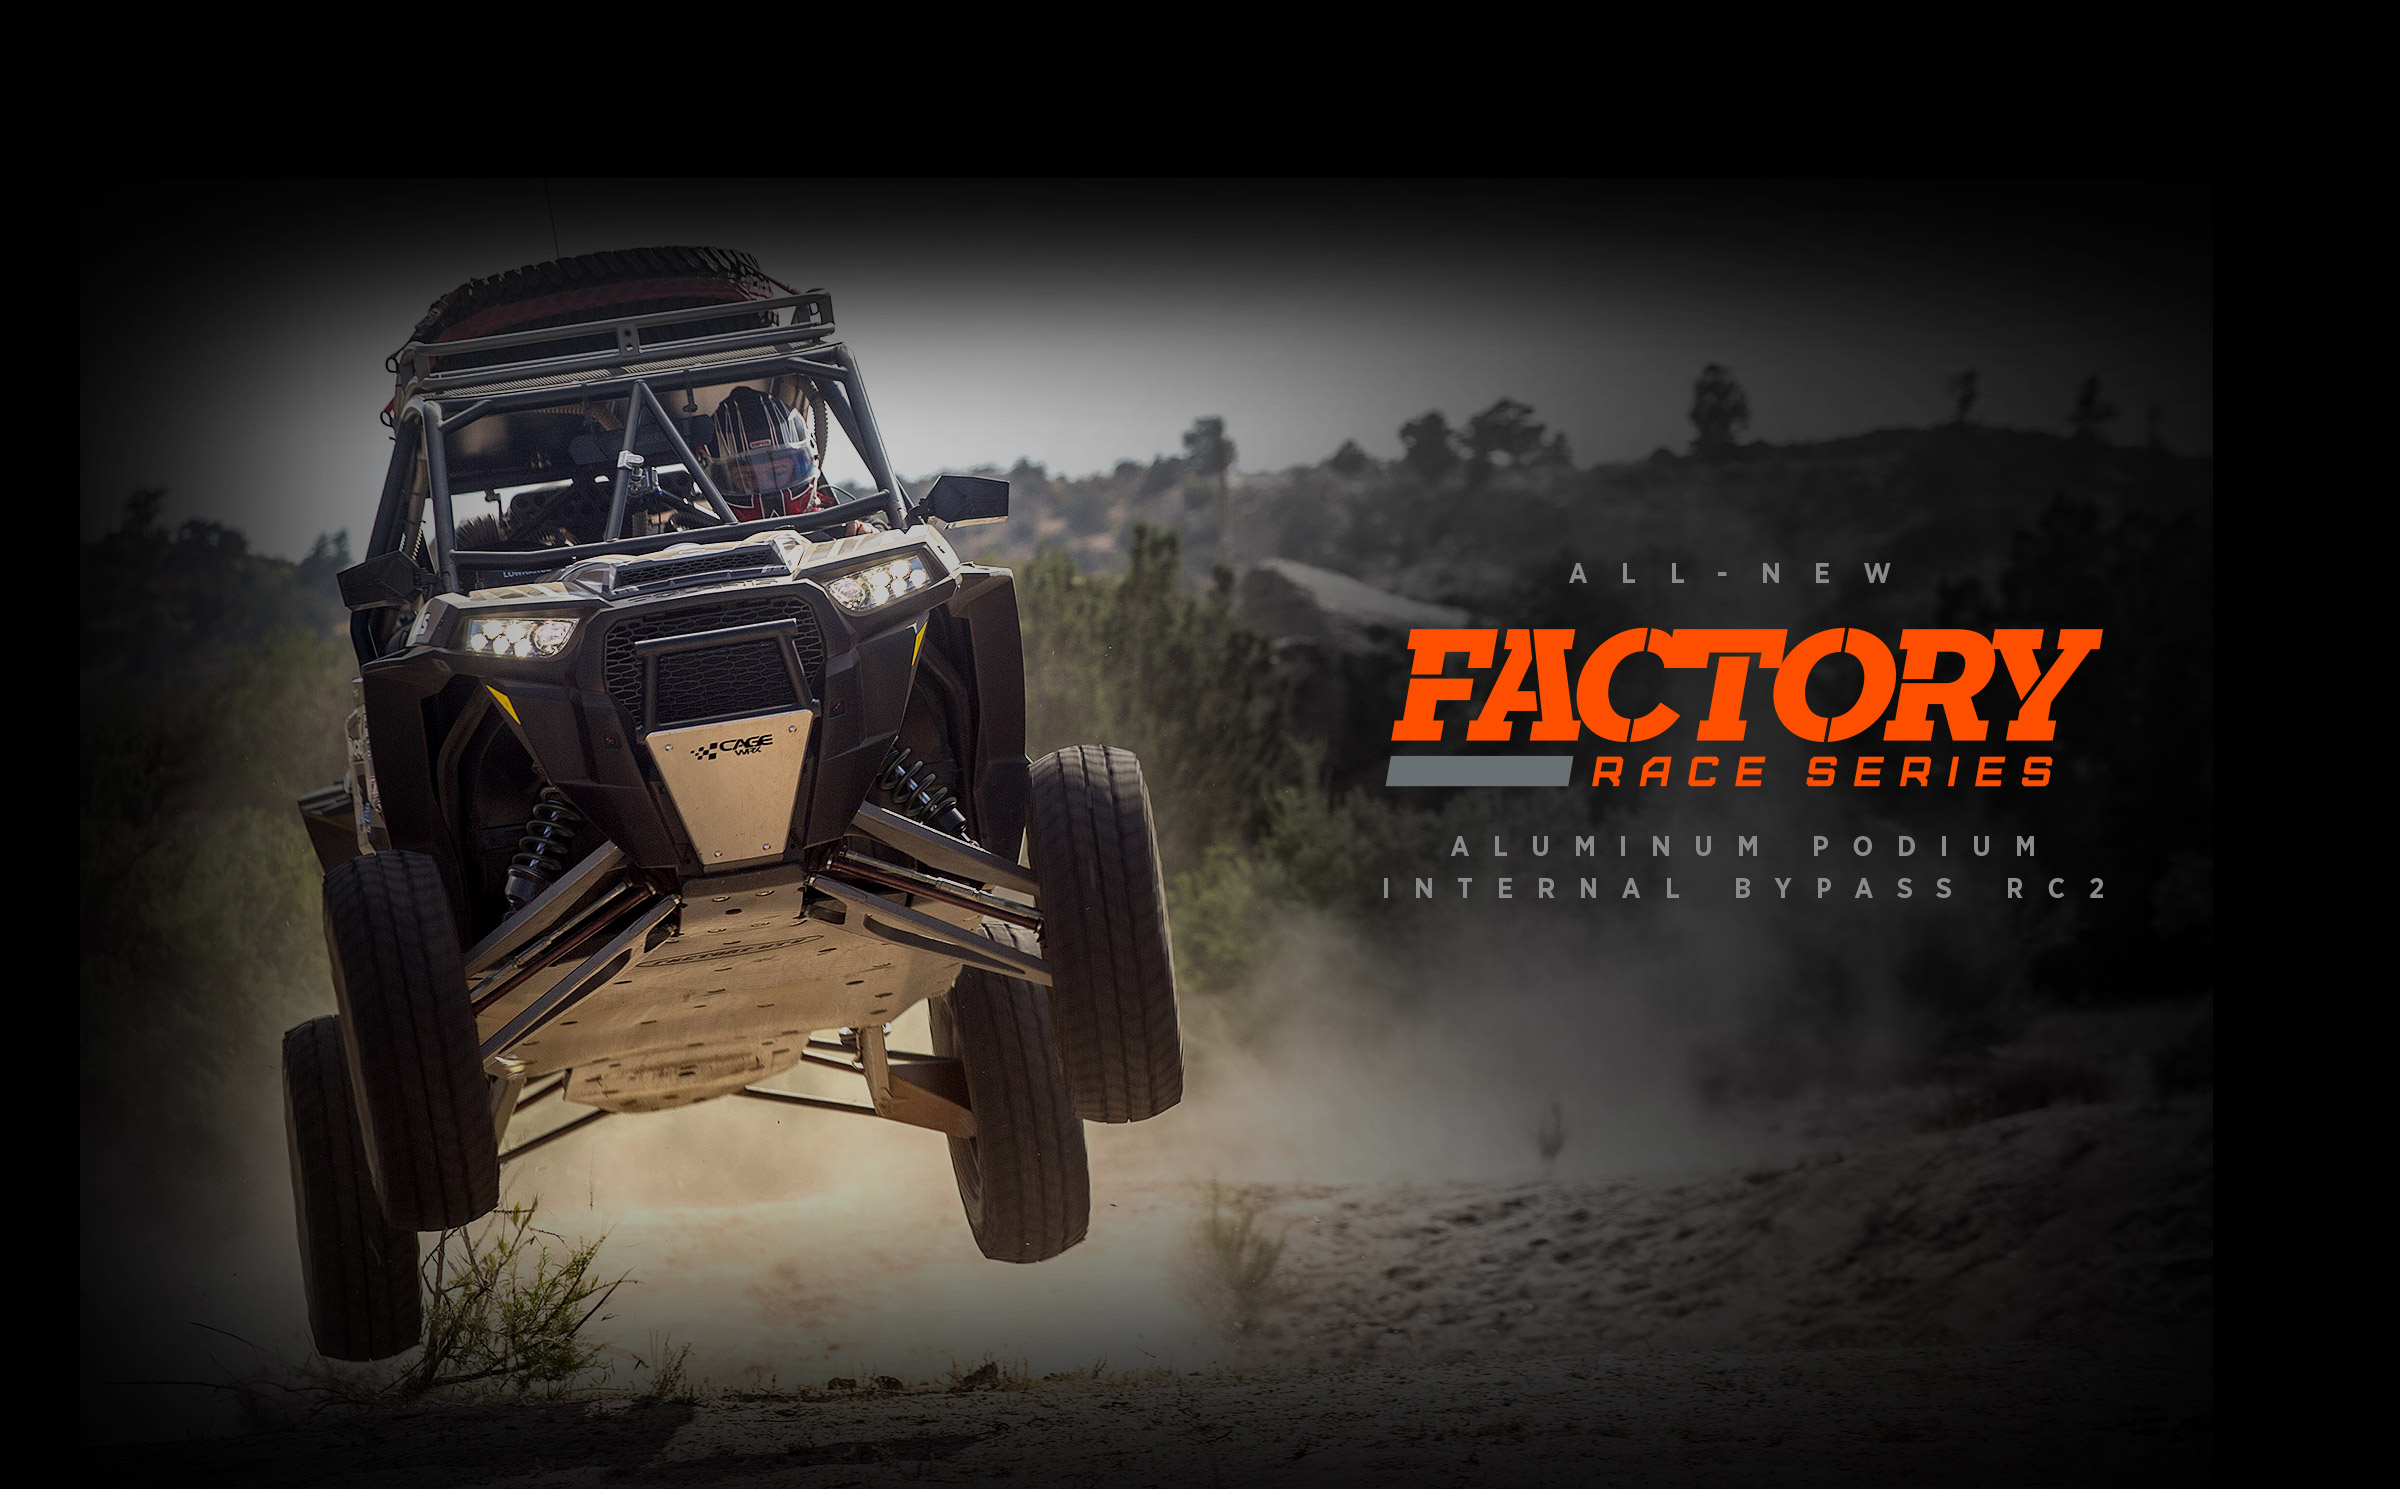 All New Factory Race Series